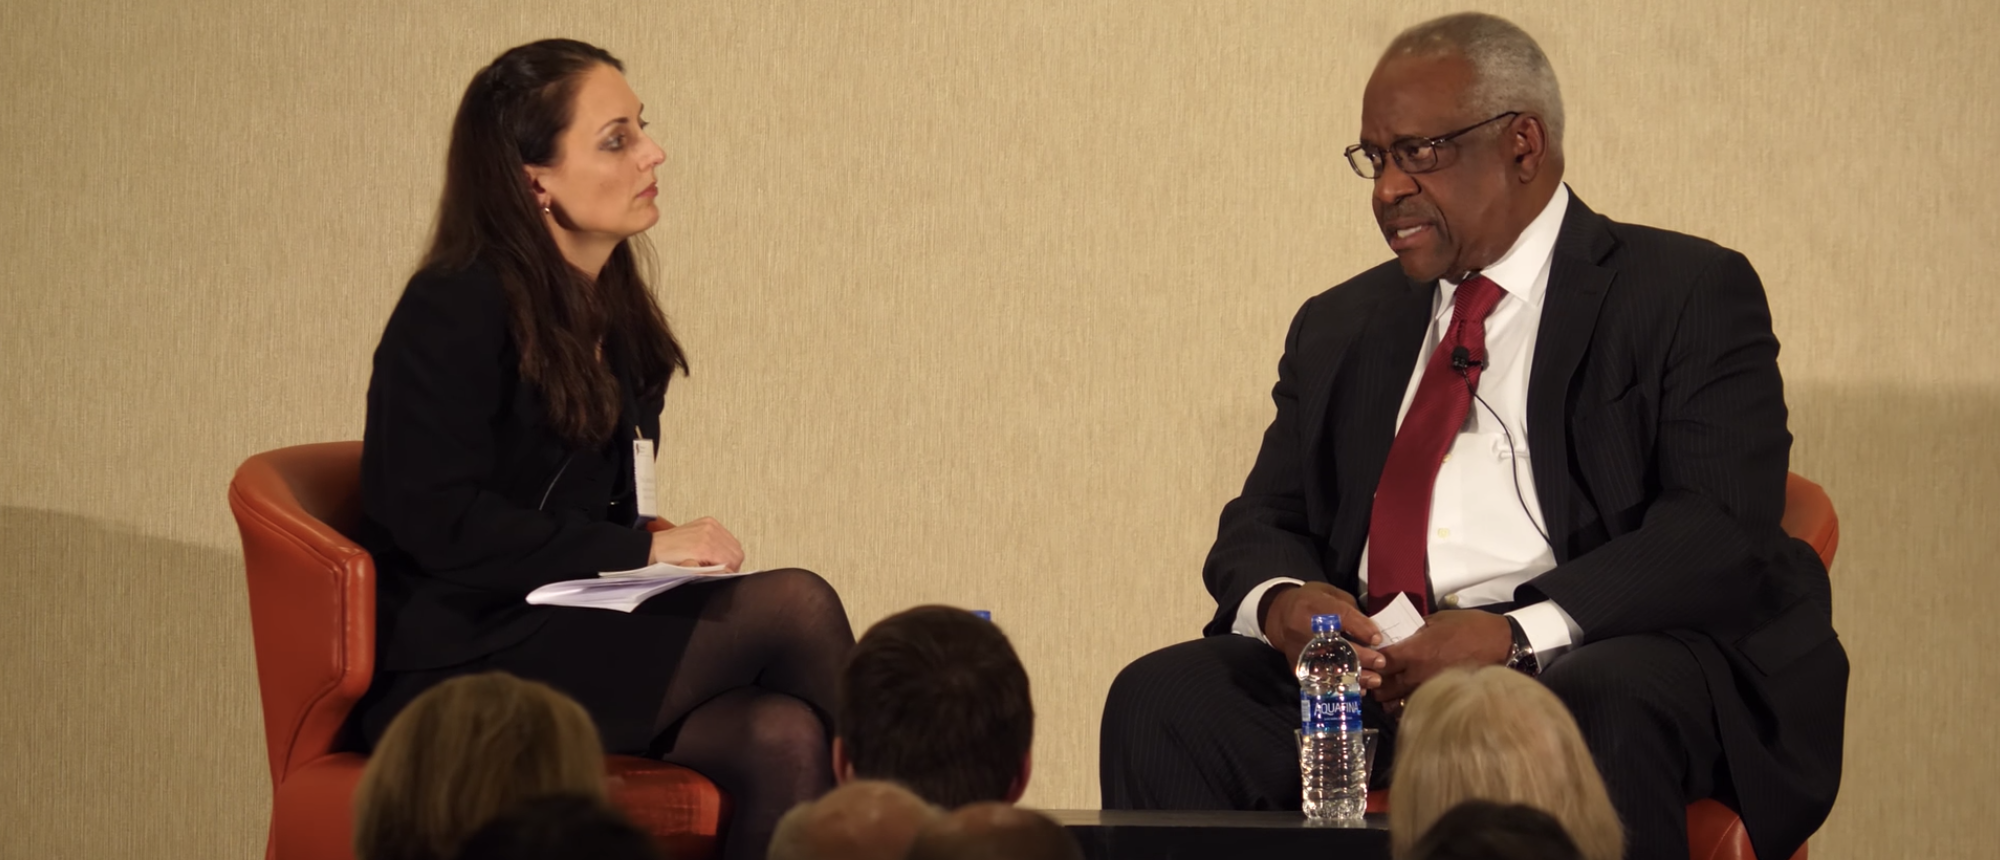 Clarence Thomas Warns Of Bid To 'Silence' Federalist Society With New Ethics Rule